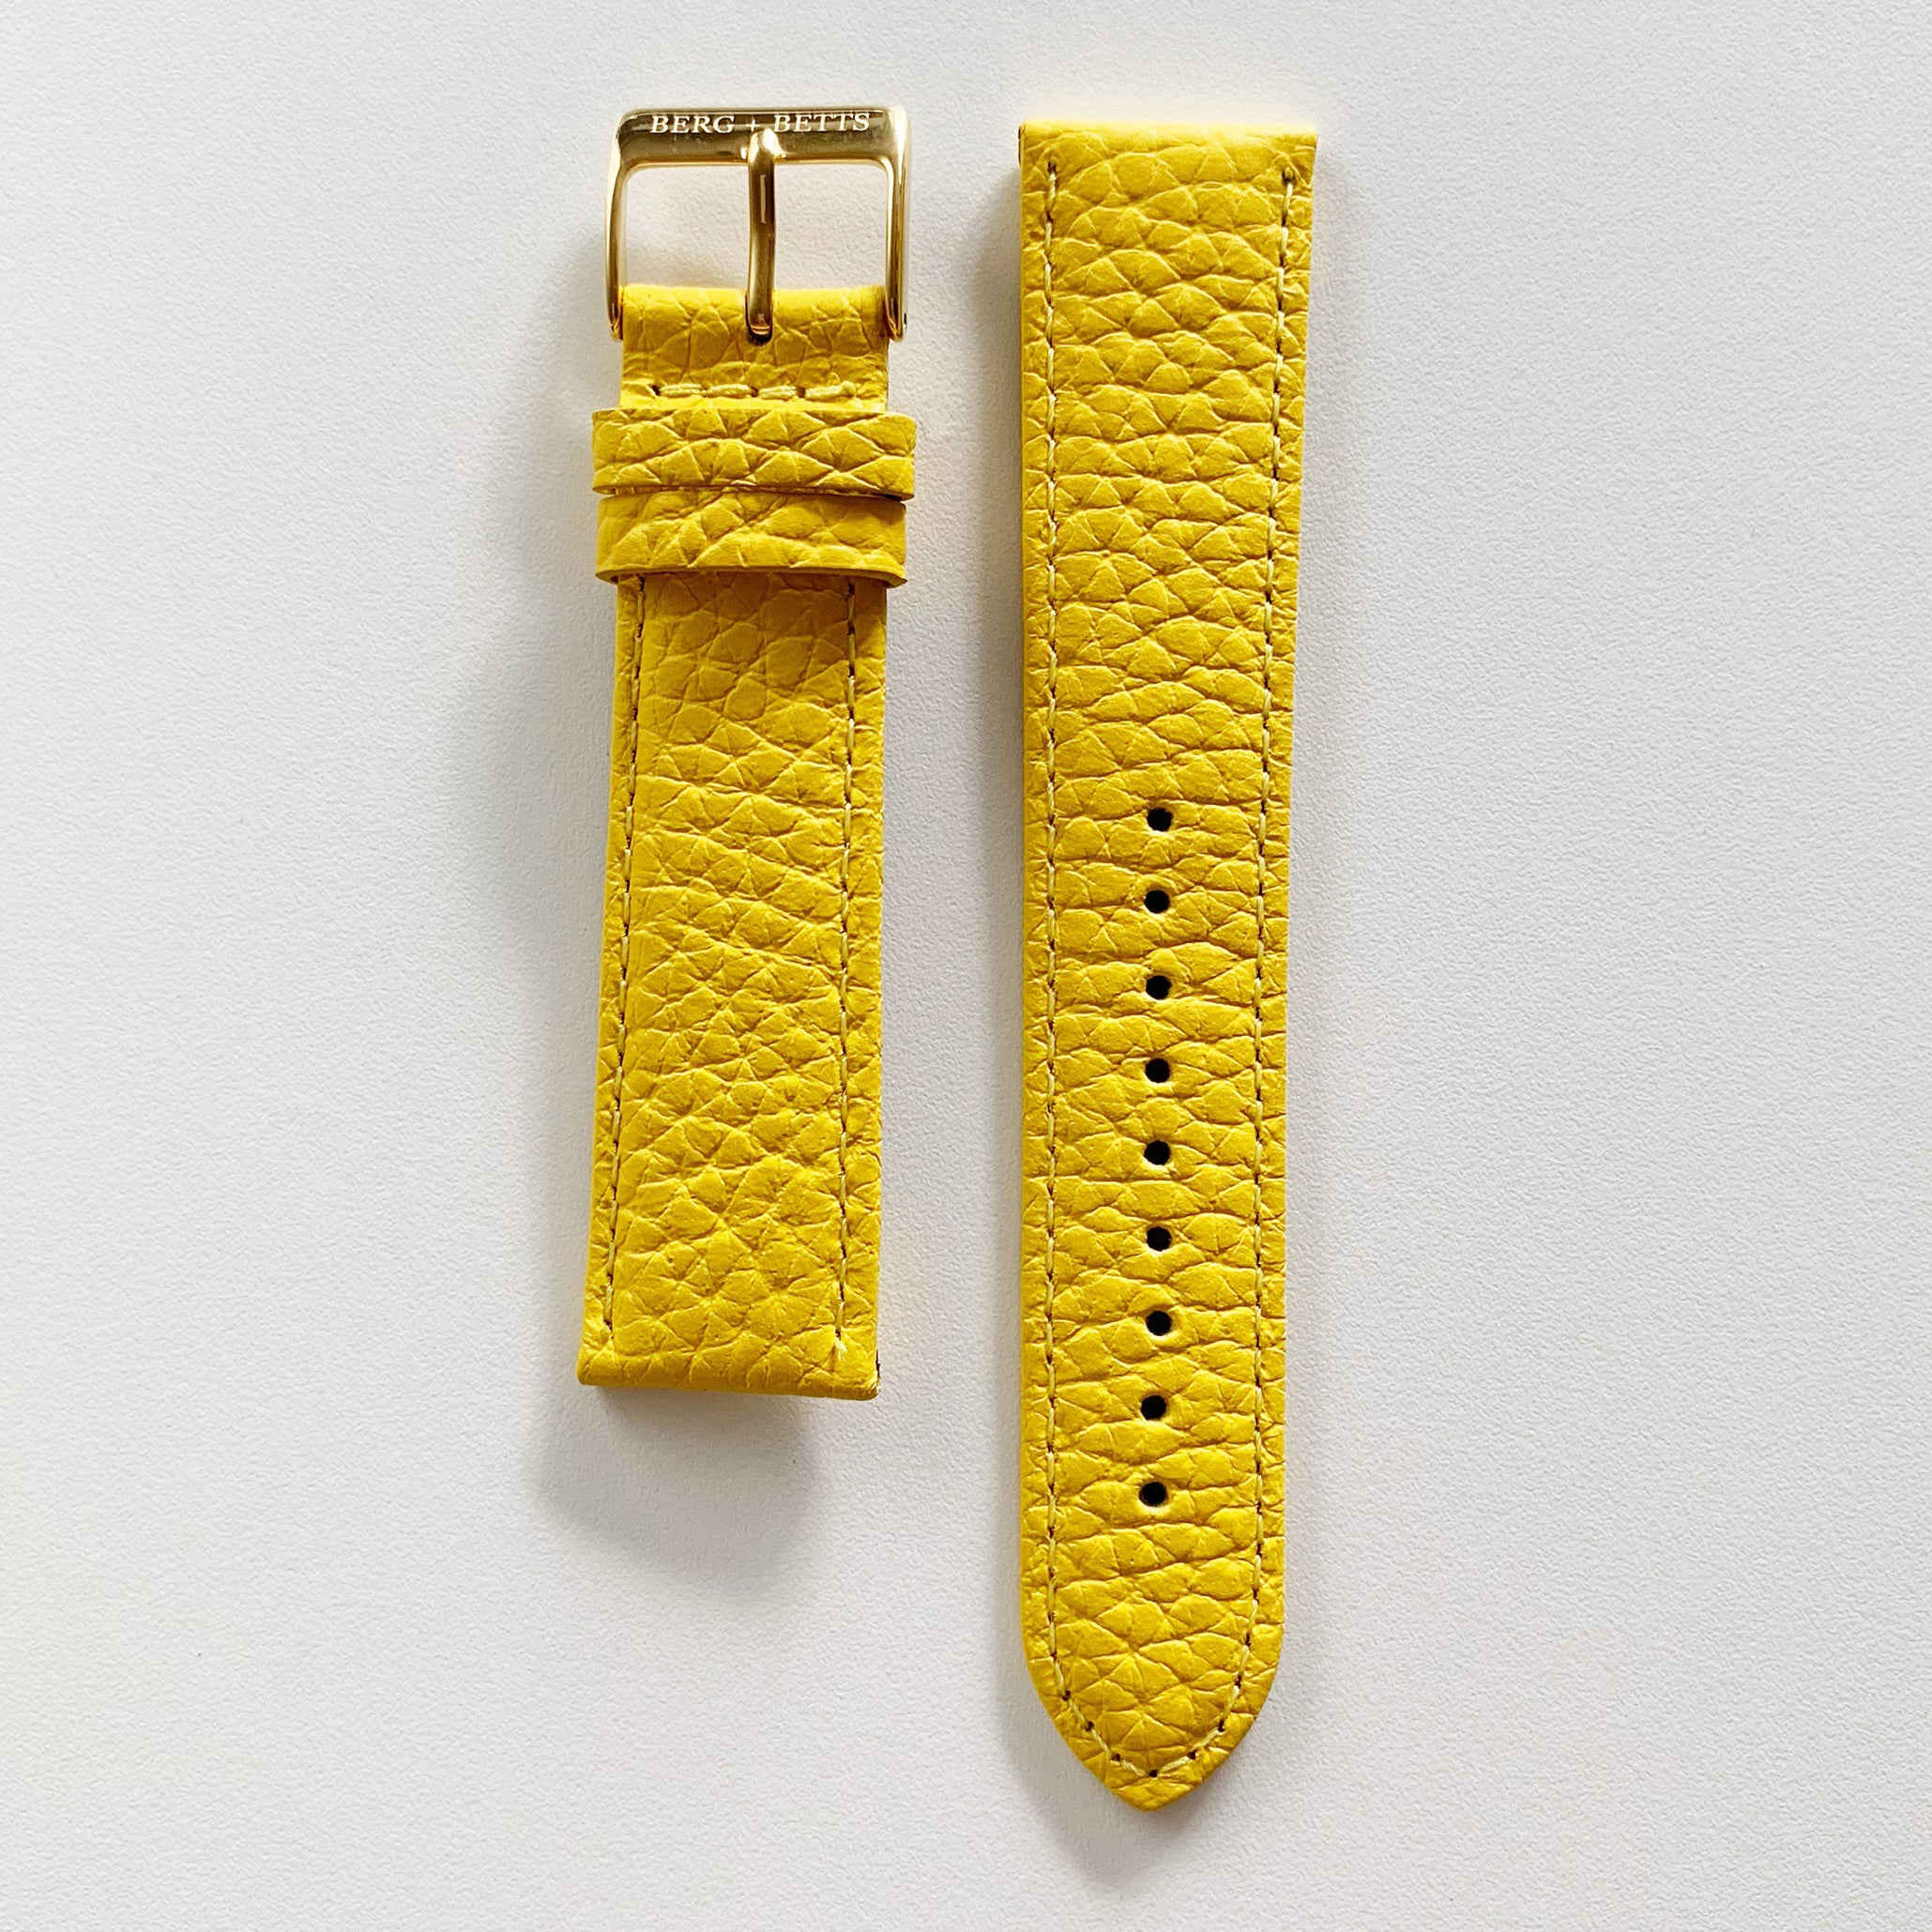 4a5ca4d8c28 Sustainable Leather Watch Strap 20mm | Bright Yellow Strap with Gold  Closures – BERG + BETTS | Sustainable Timepieces